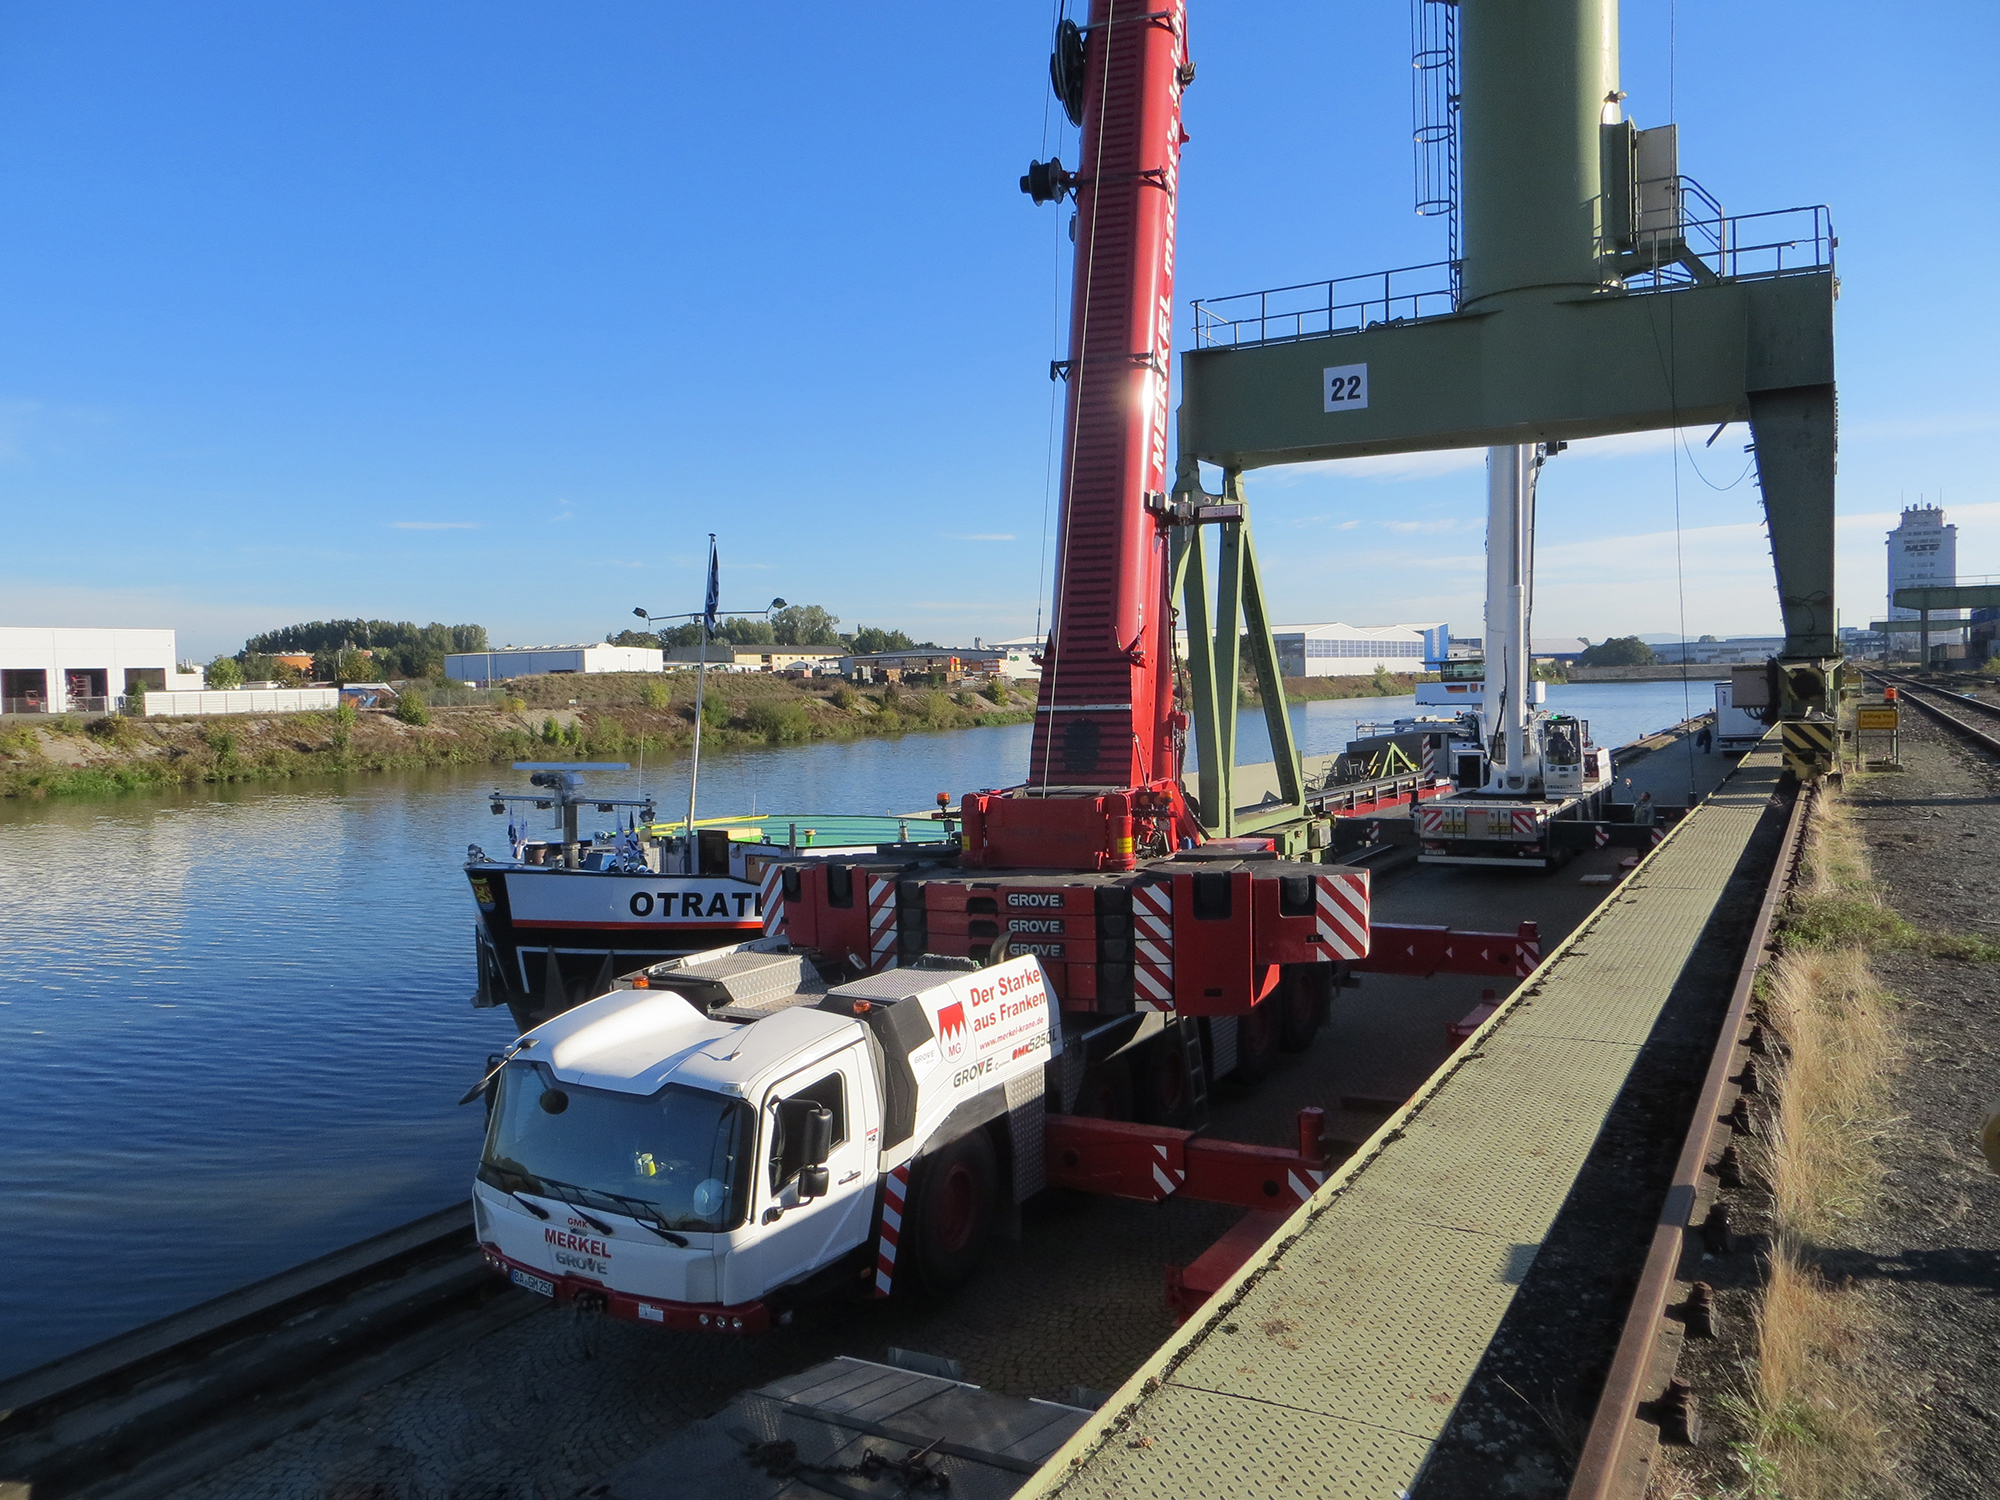 MTW-News-Pair-of-GMK5250Ls-complete-tandem-lift-in-tight-quarters-at-Bamberg-port3.JPG